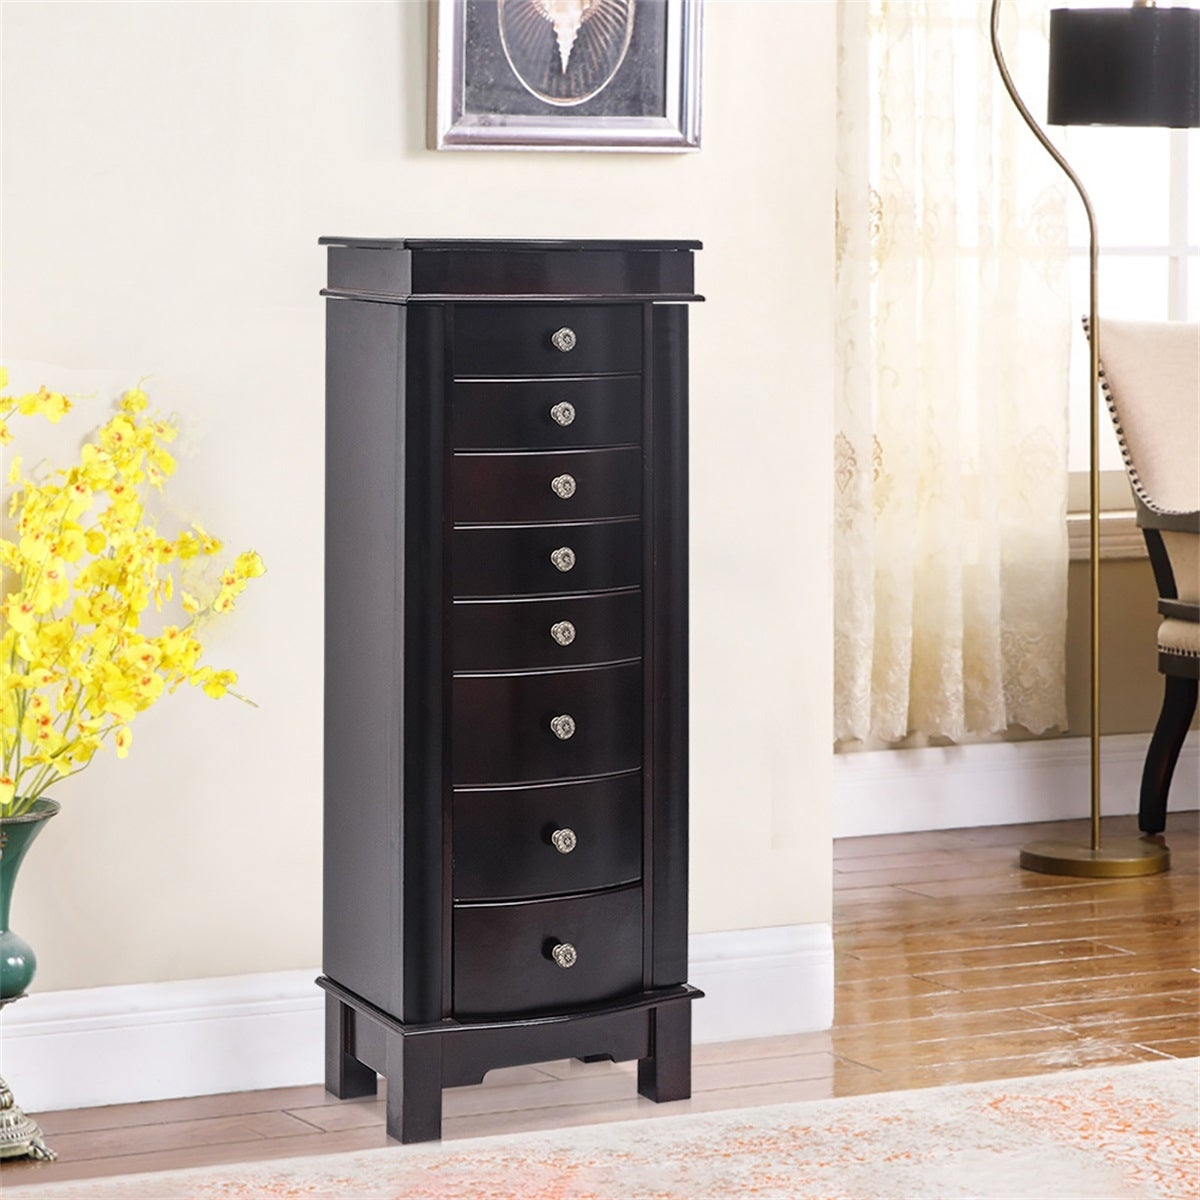 Image of: Shop Standing Jewelry Armoire With Mirror 5 Drawers 6 Necklace Hooks Overstock 31584693